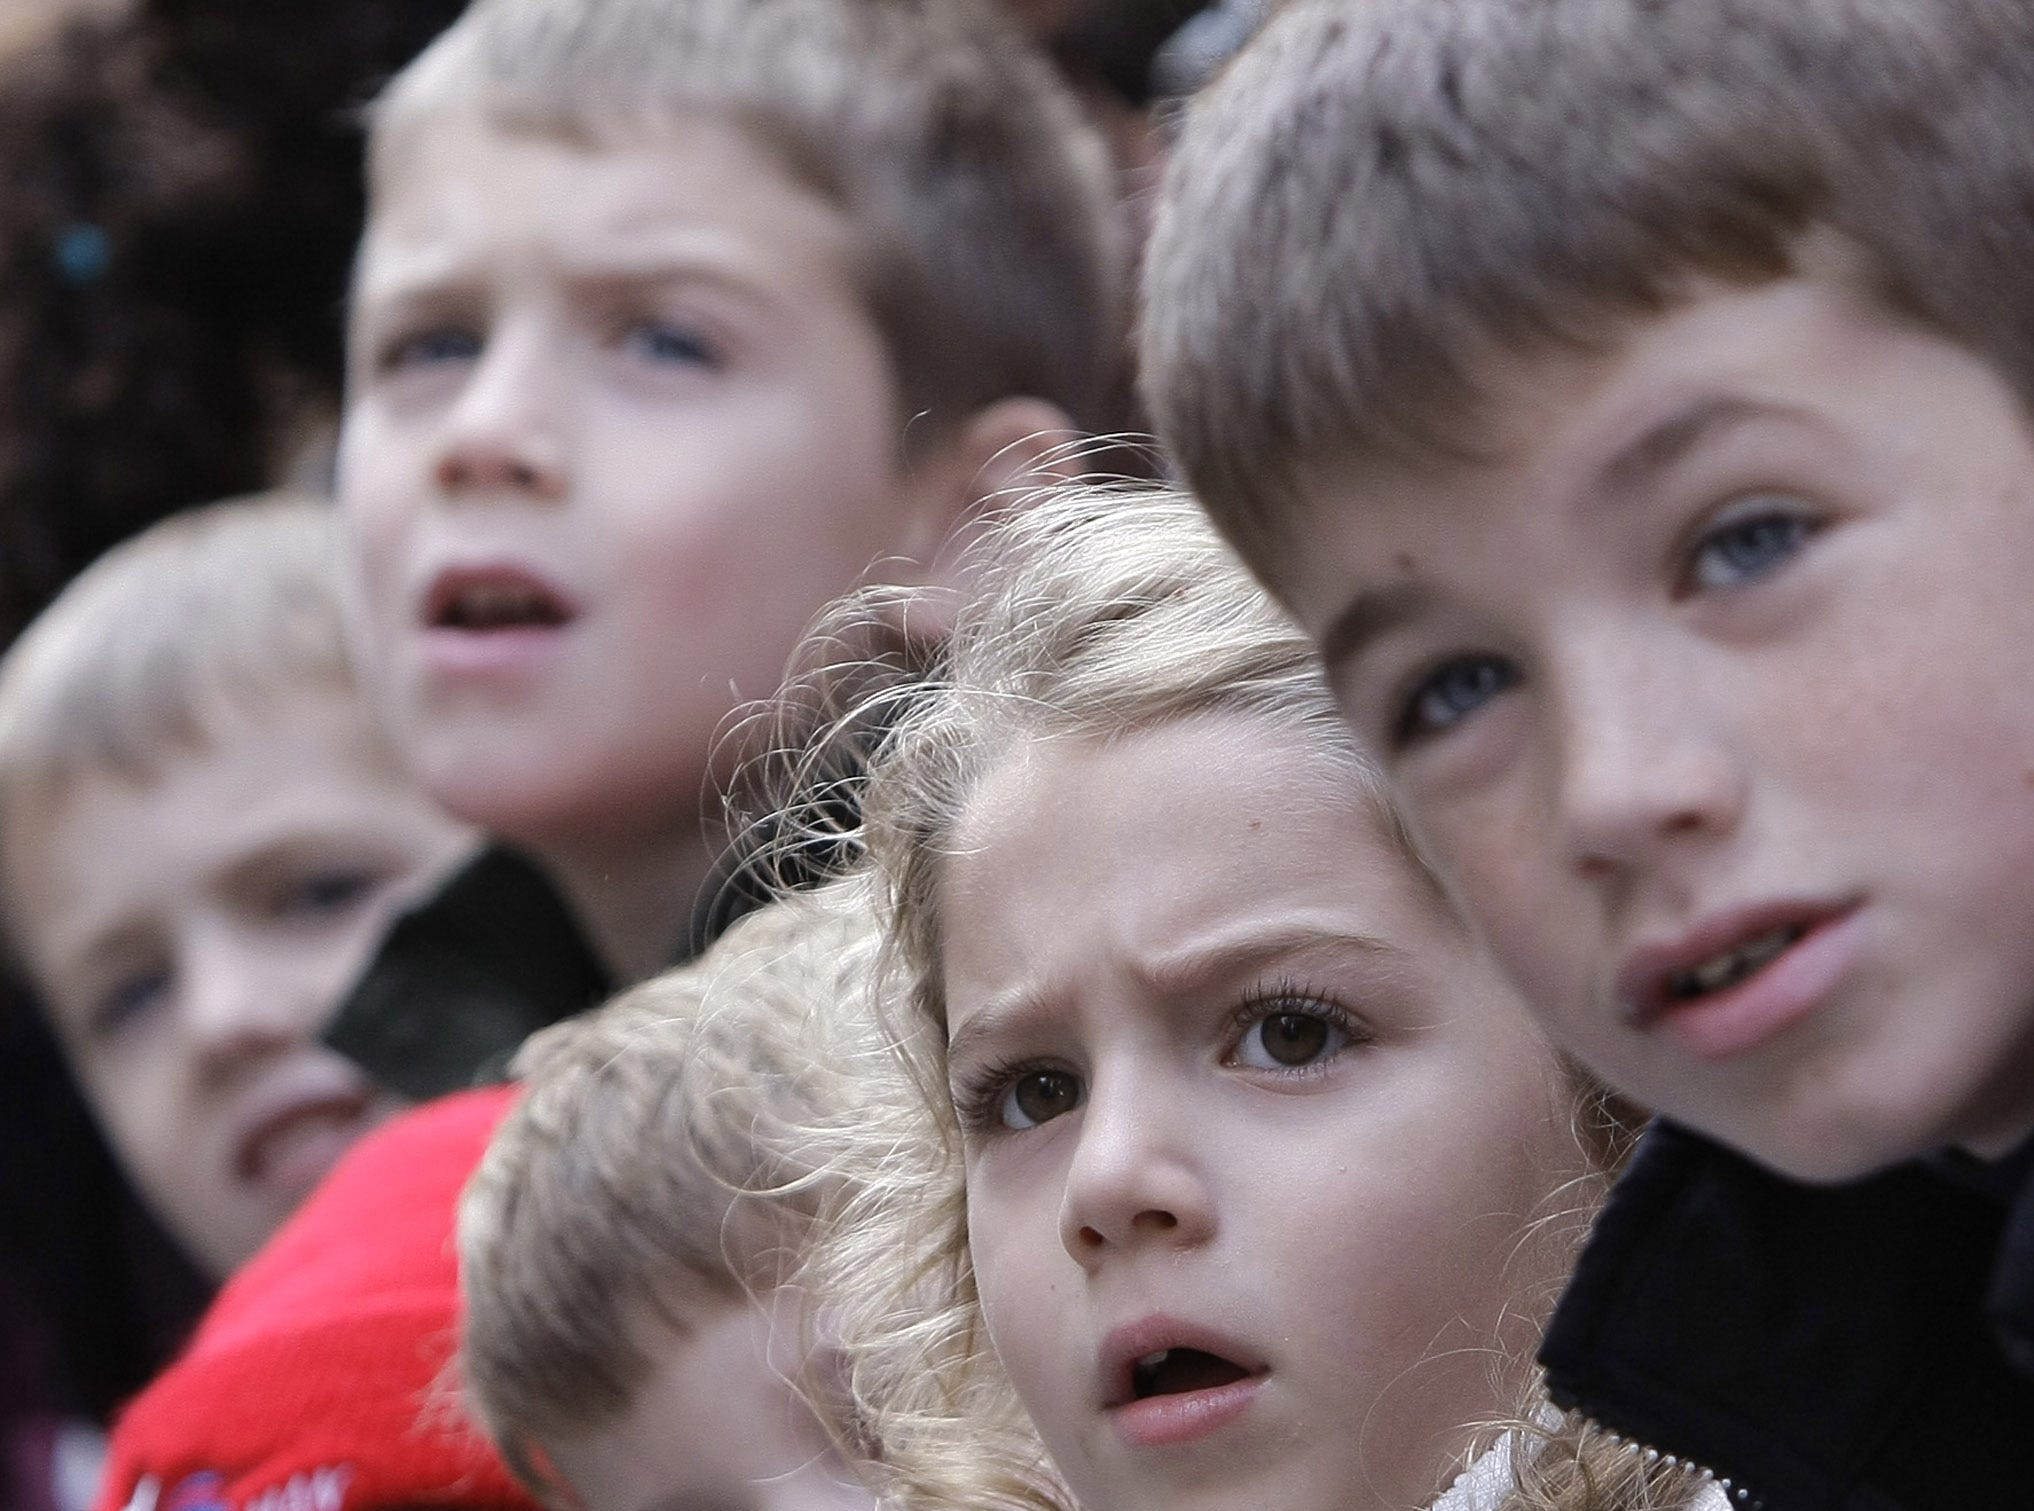 Children watch as the Shrek balloon passes by on Broadway during the Macy's Thanksgiving Day parade Thursday, Nov. 22, 2007 in New York. (AP Photo/Julie Jacobson)